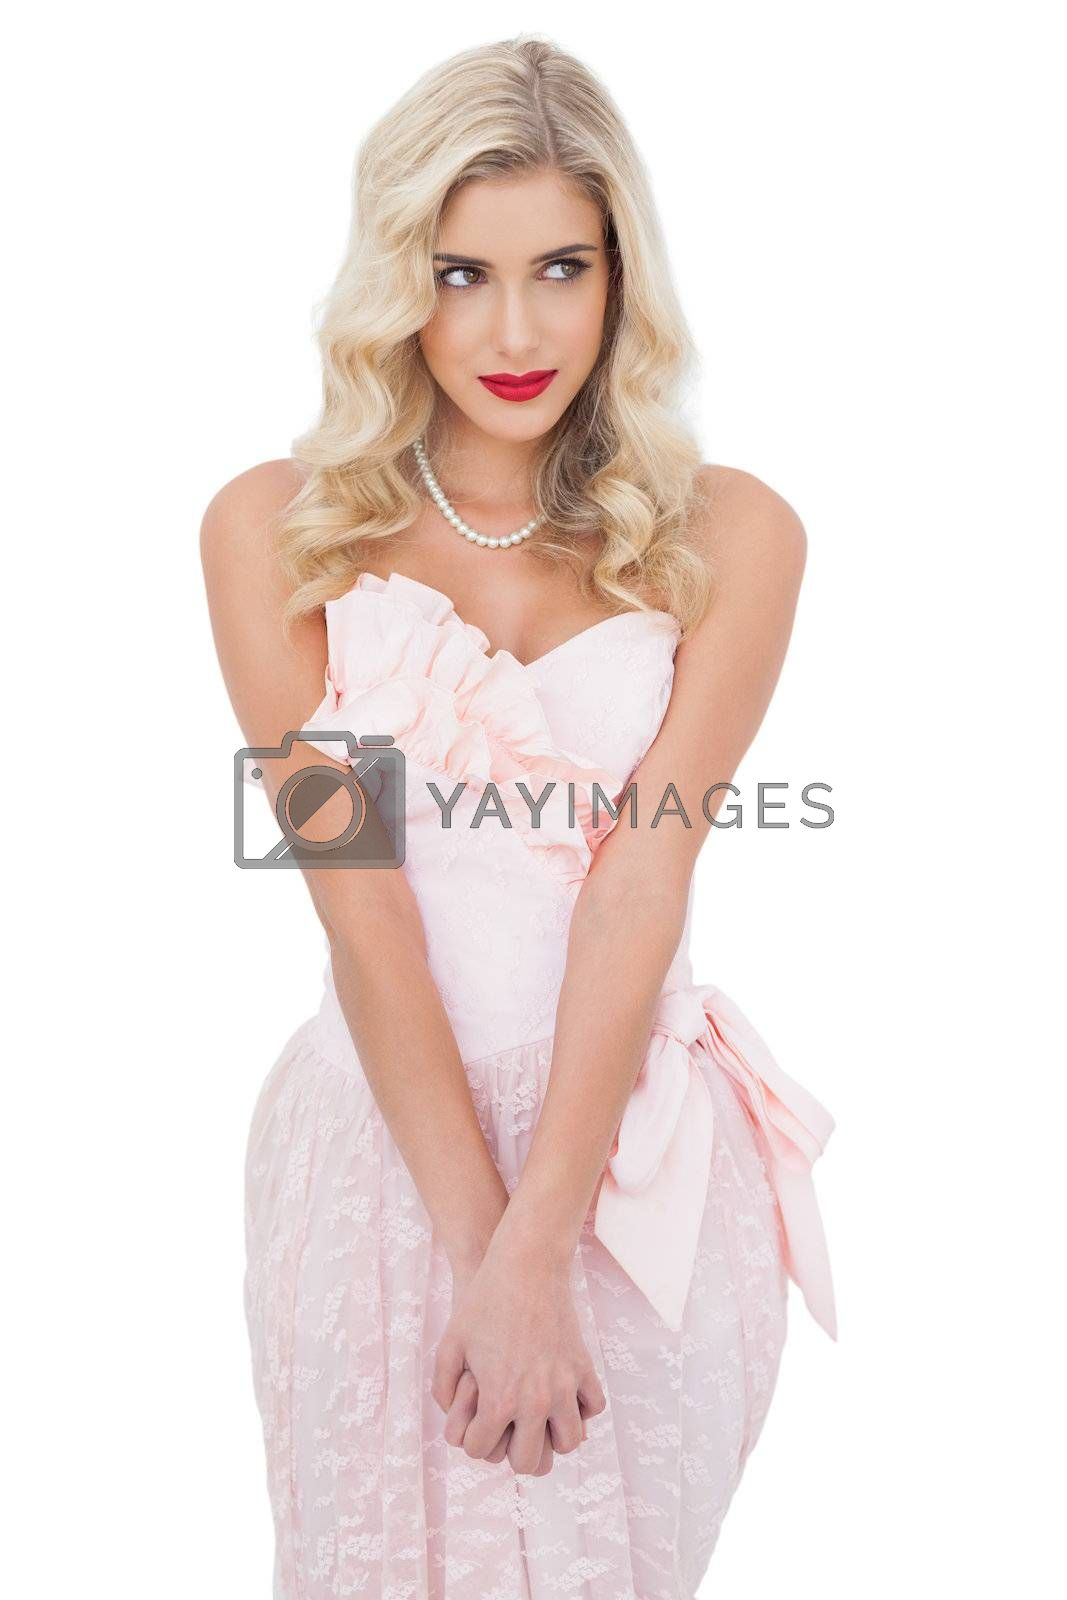 Concentrated blonde model in pink dress posing holding her hands and looking away by Wavebreakmedia